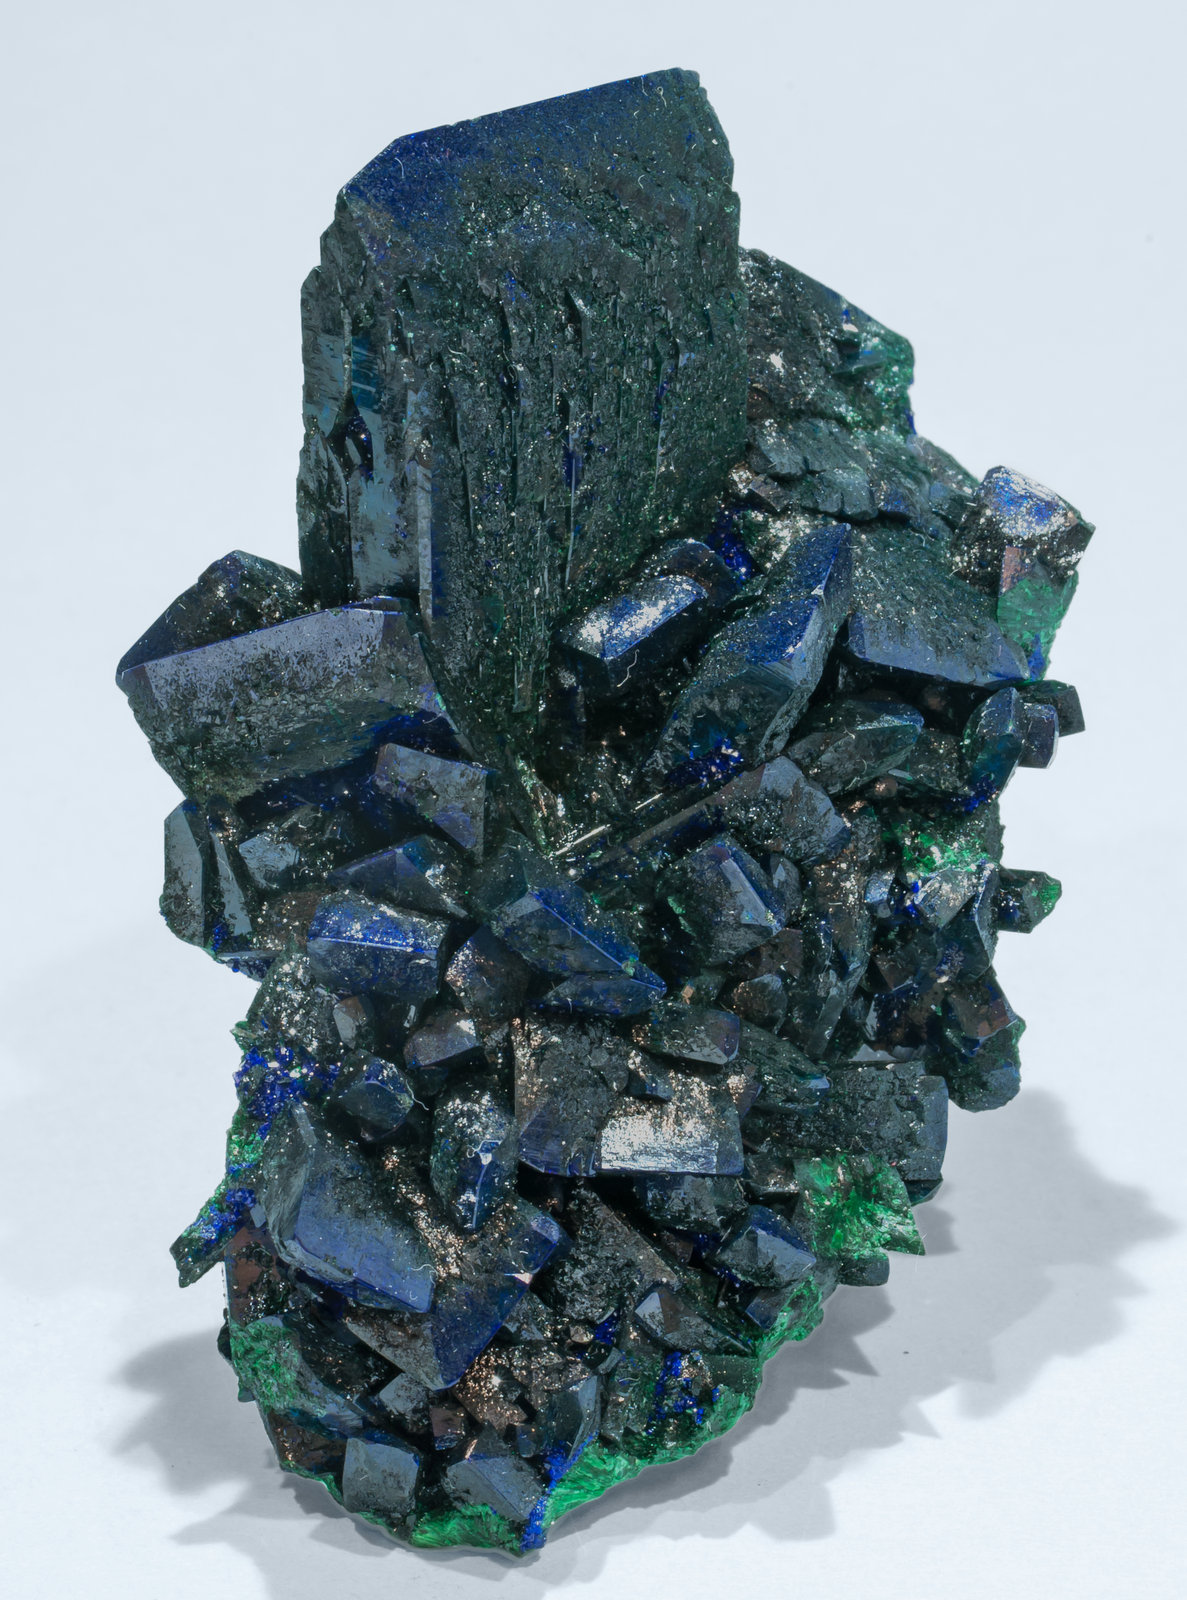 specimens/s_imagesAL4/Malachite-TC37AL4s.jpg